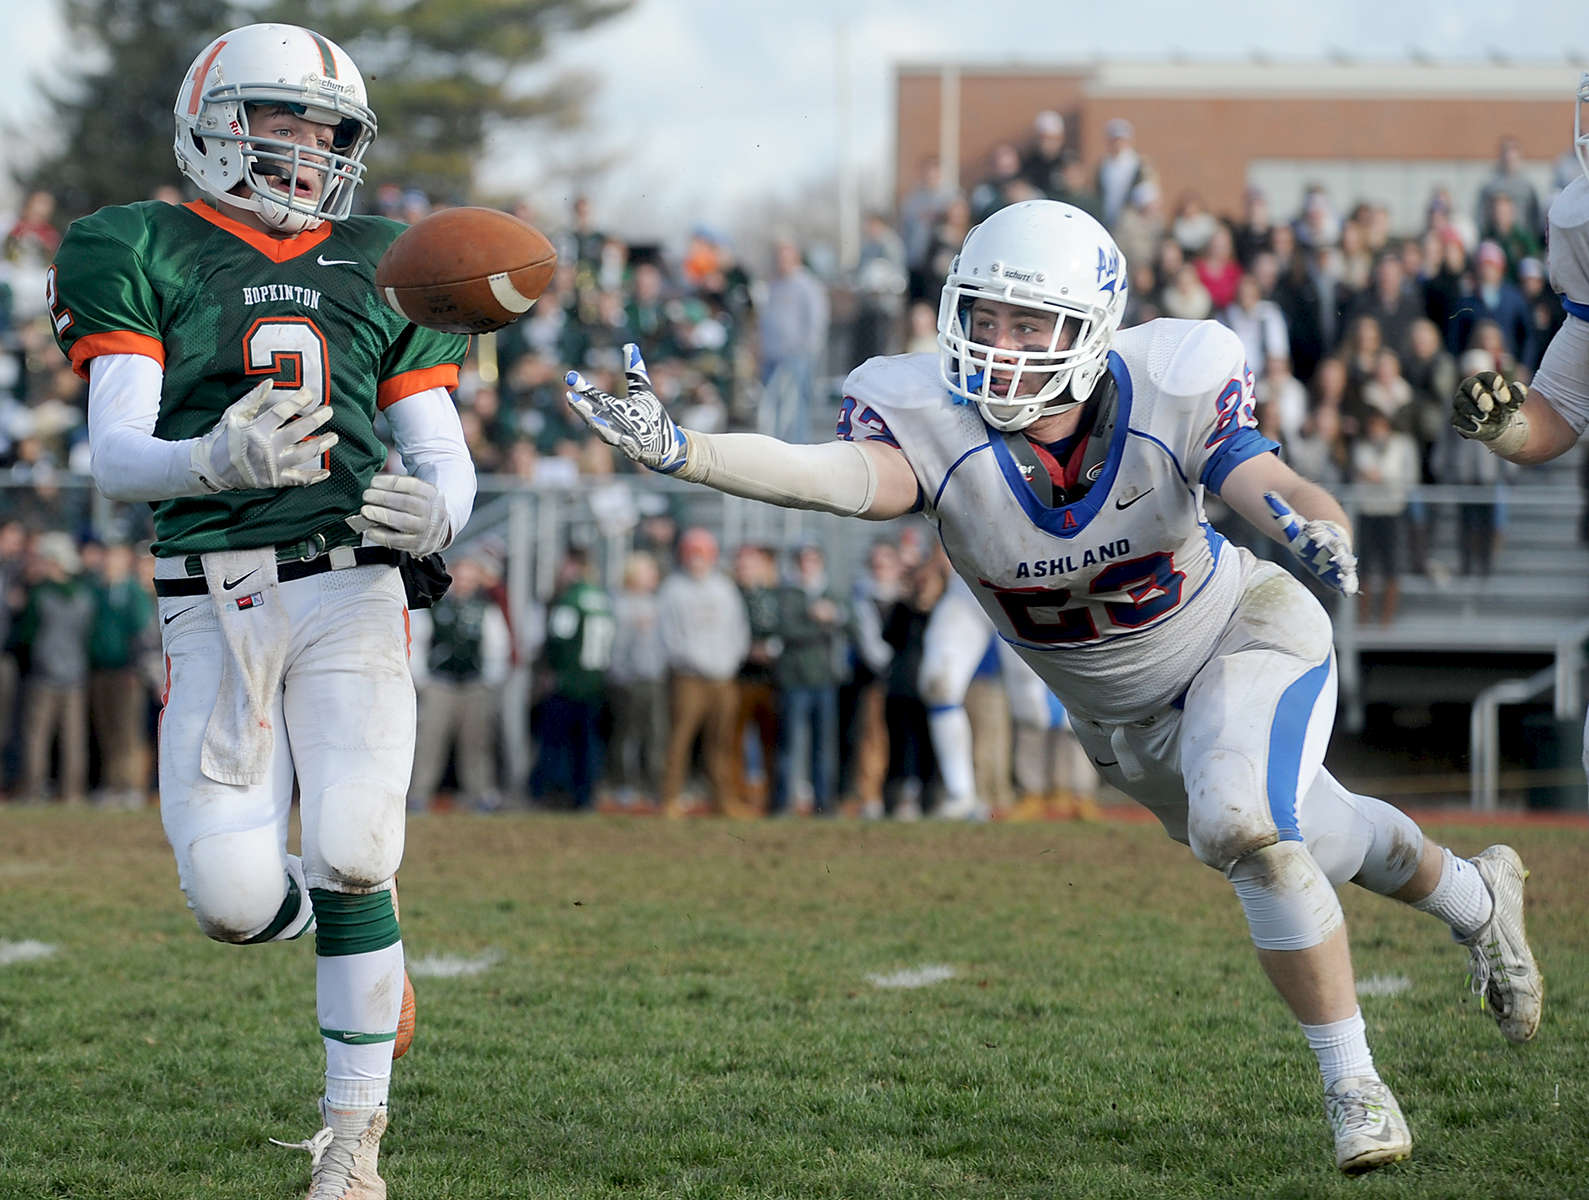 Hopkinton's #2 Will Abbott about to catch what would be the winning touchdown against Ashland in the fourth quarter at David M. Hughes Stadium on Thanksgiving. Defending is #23 Filip Cooper. The final score was 35-33.Daily News Staff Photo/Art Illman